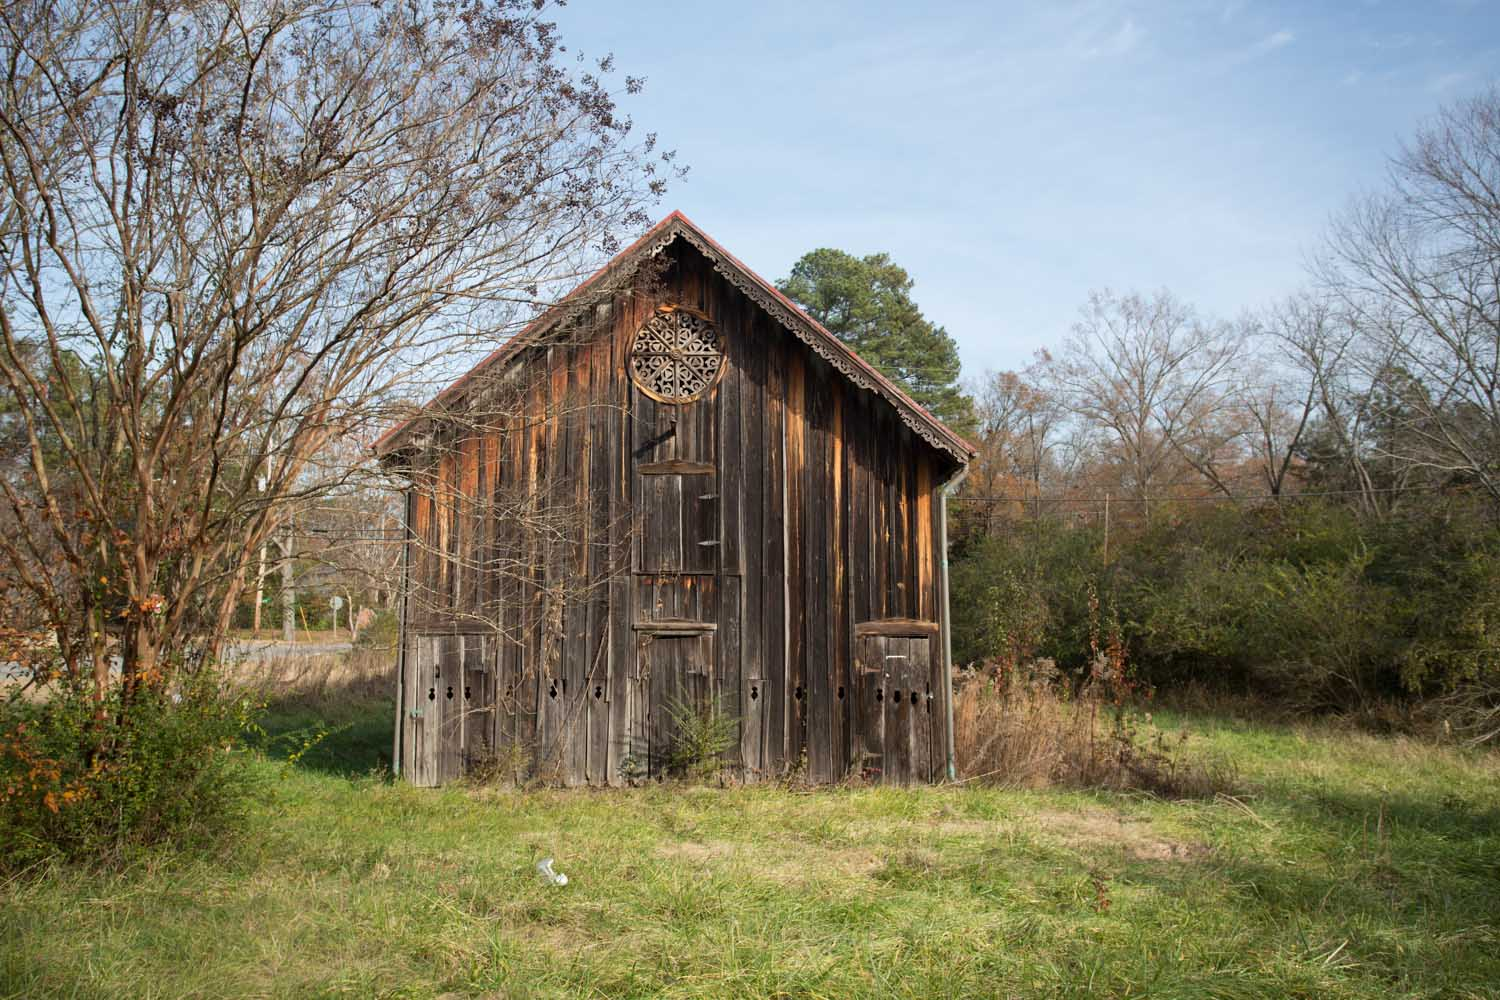 a favorite spot of mine, graves barn stand tall near downtown sparta, georgia. it has not changed much in the 15 years that i have been visiting, and its folk gothic woodwork gets me every time. this style is very unique to the area; to my knowledge there aren't any other structures with these forms. and, on this late fall day, the barn was the perfect backdrop for the colors of the drying grasses and dark plum-reds of the leaves nearby.